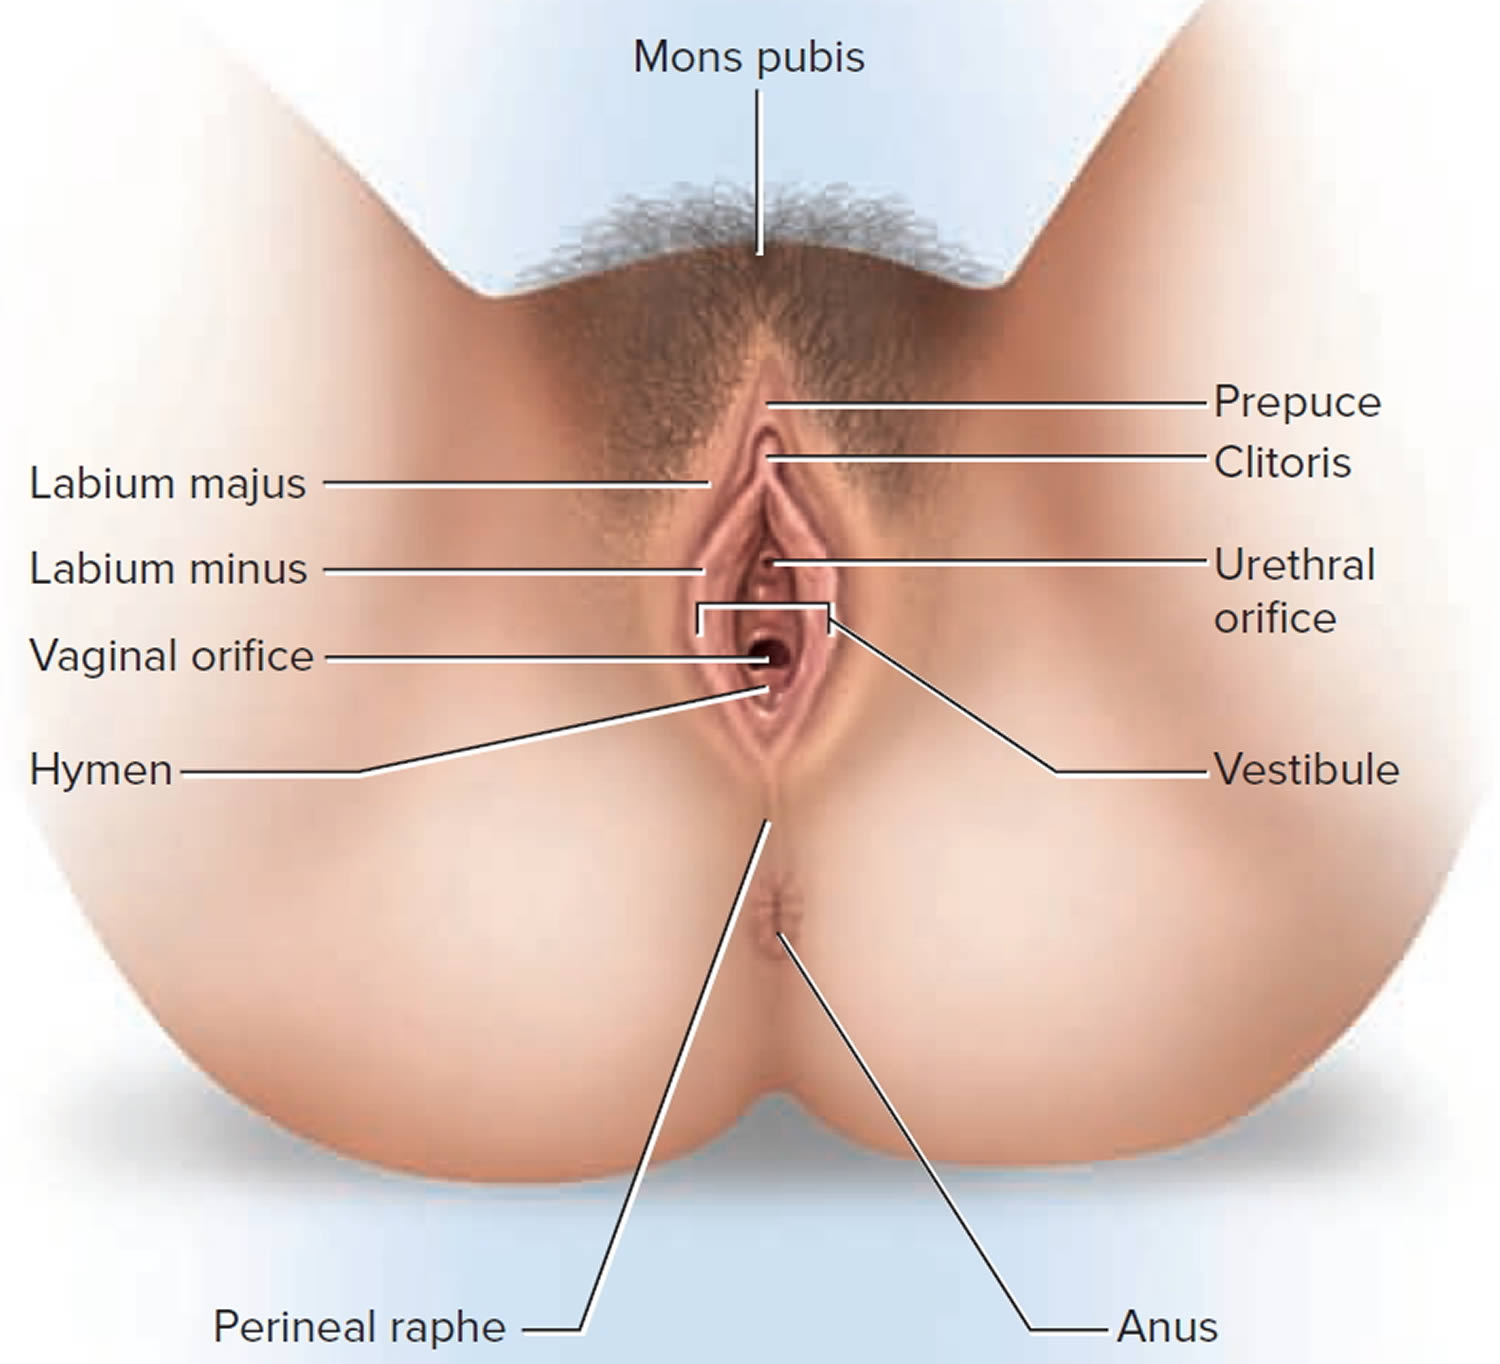 Clitoris inflamation picture